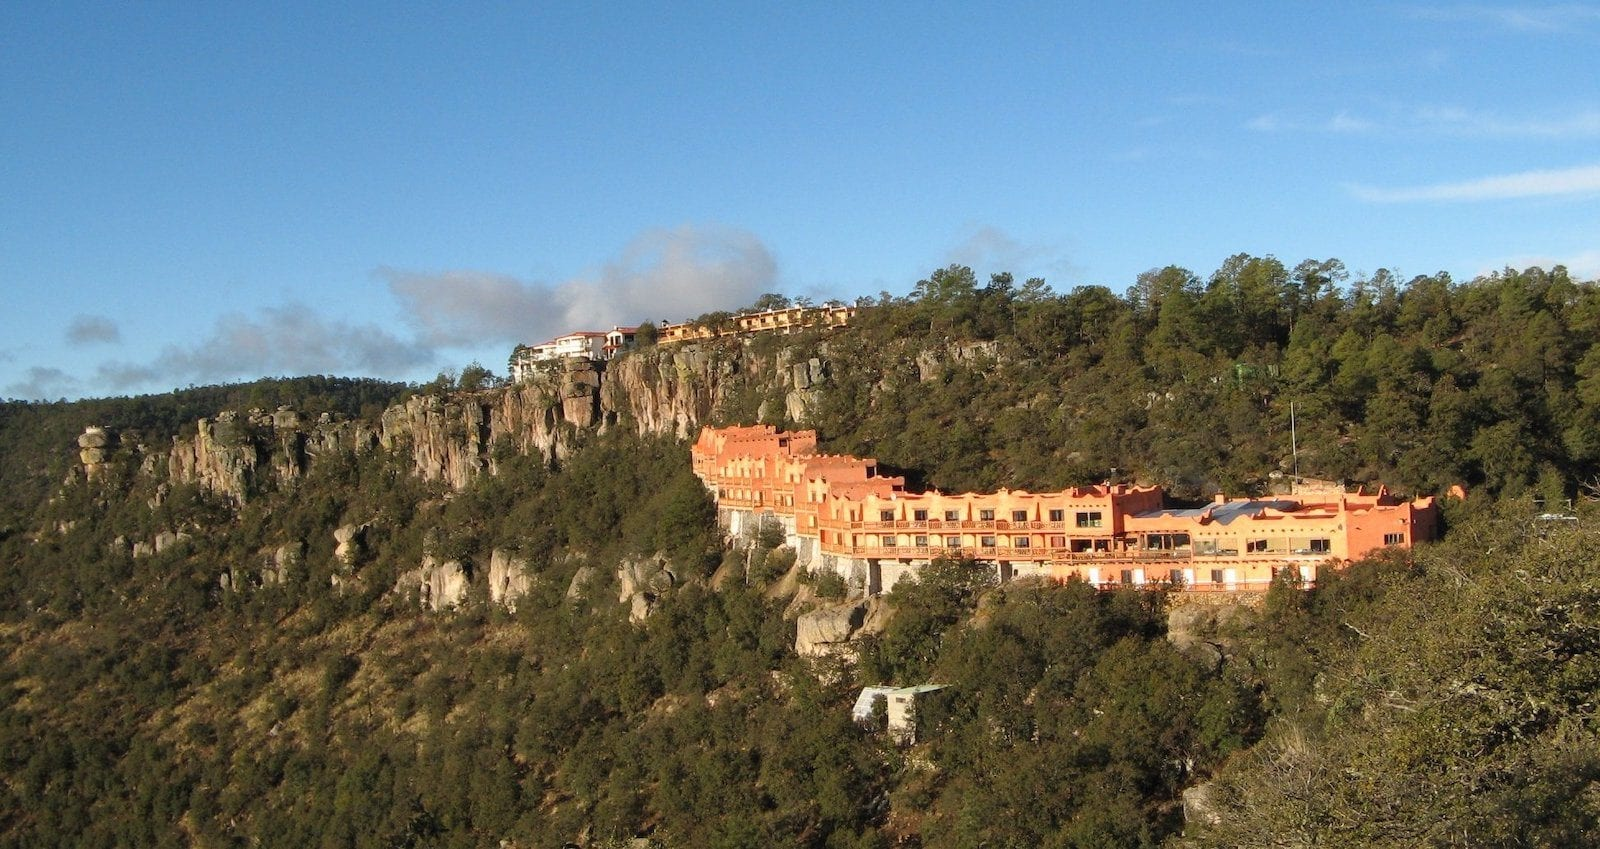 Posada Barrancas Mirador from canyon rim, Copper Canyon, Mexico